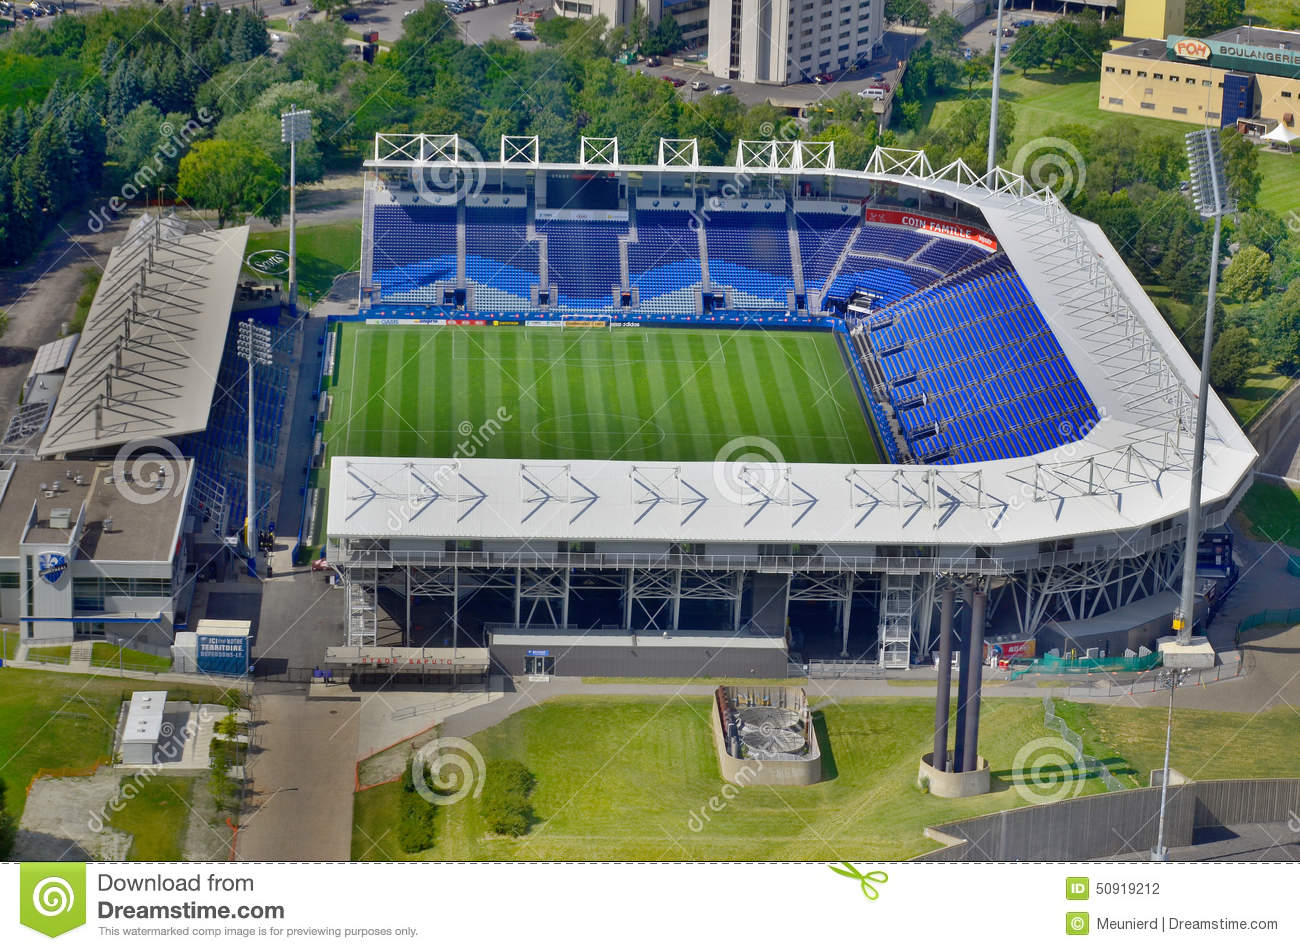 ... 11 2013: Saputo stadium home of the Canadian professional soccer